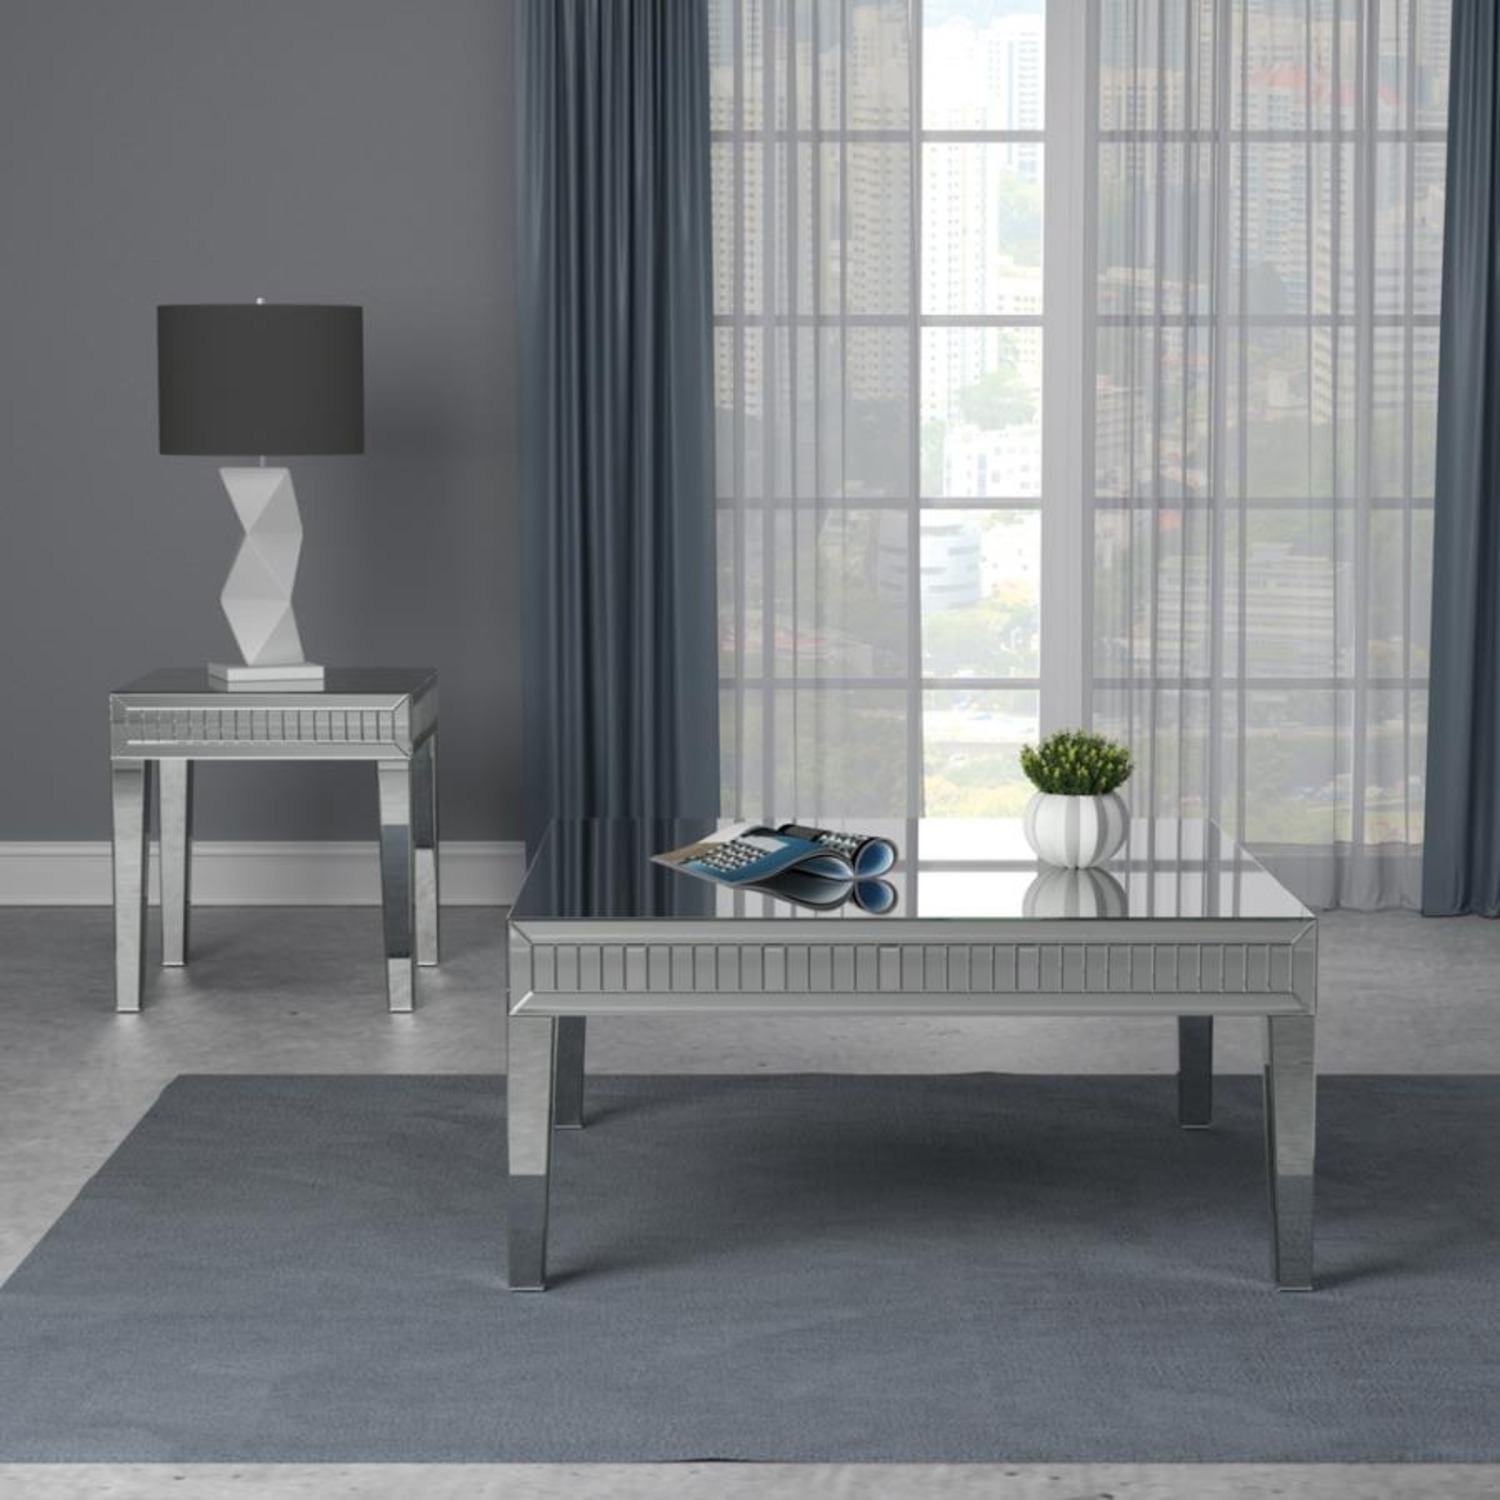 Coffee Table In Silver Finish W/ Mirror Tile Frame - image-3